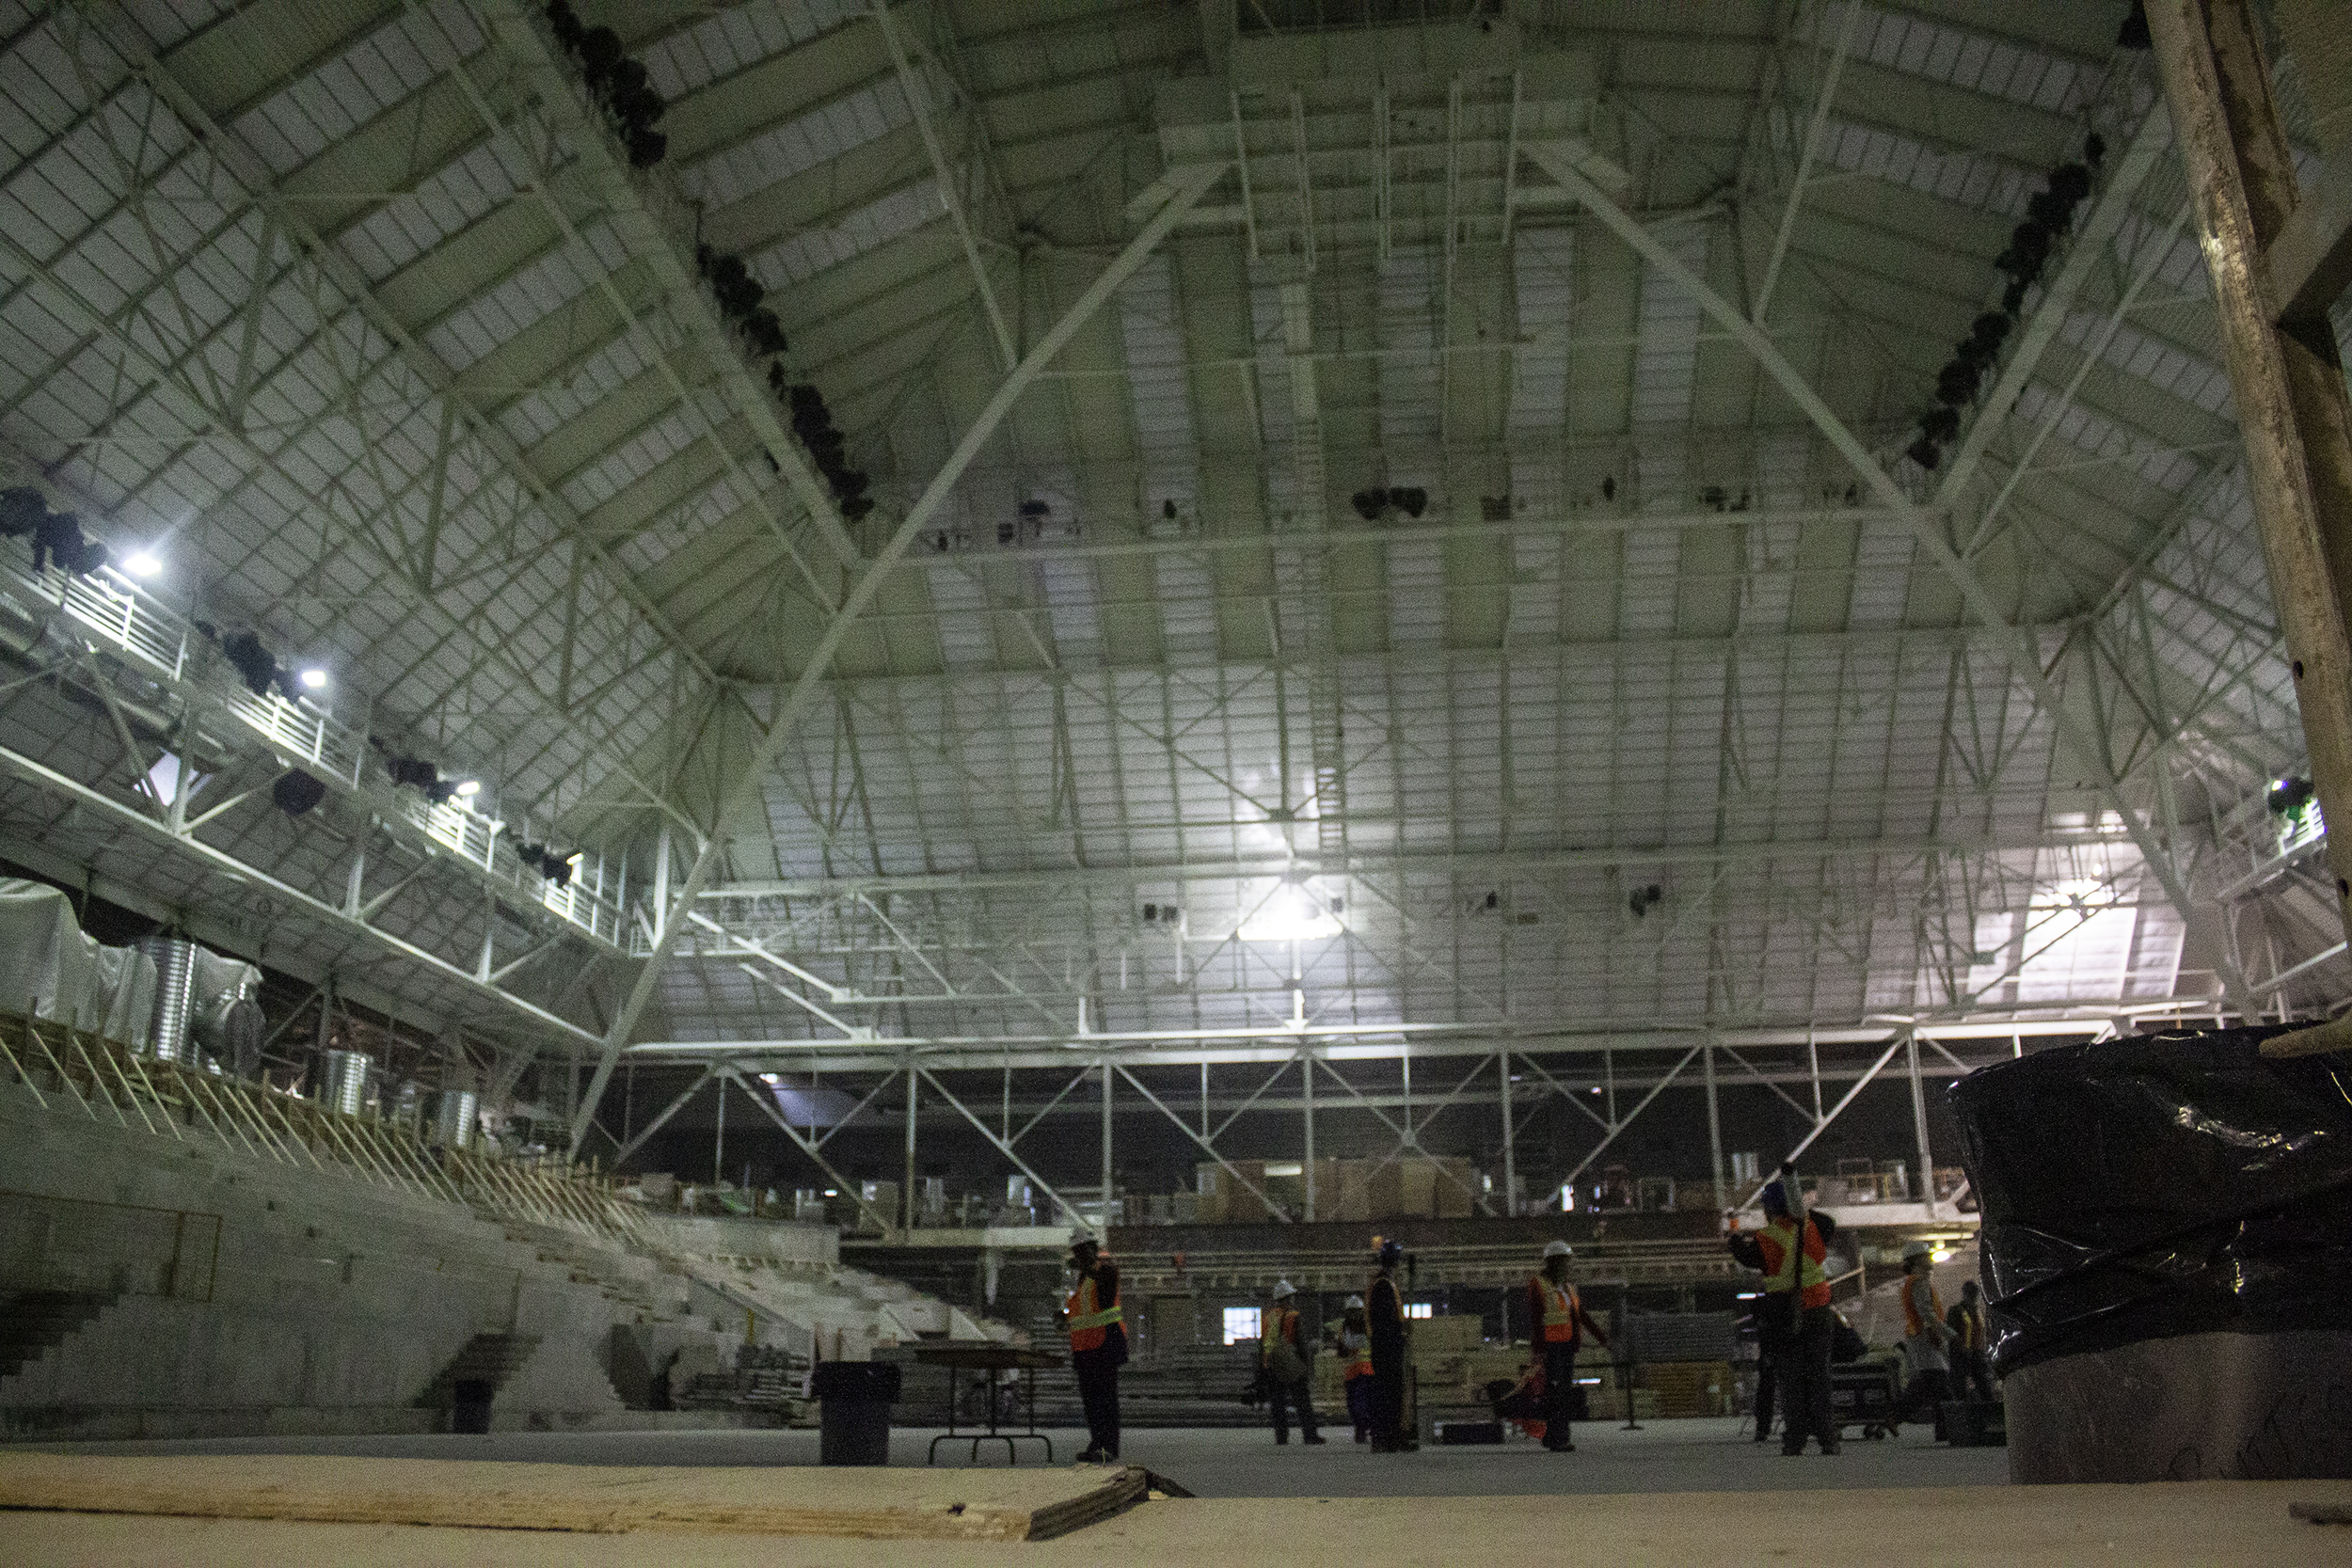 Ryerson University's Mattamy Athletic Centre under renovations pictured on Nov. 29, 2011. (Steve Silva)